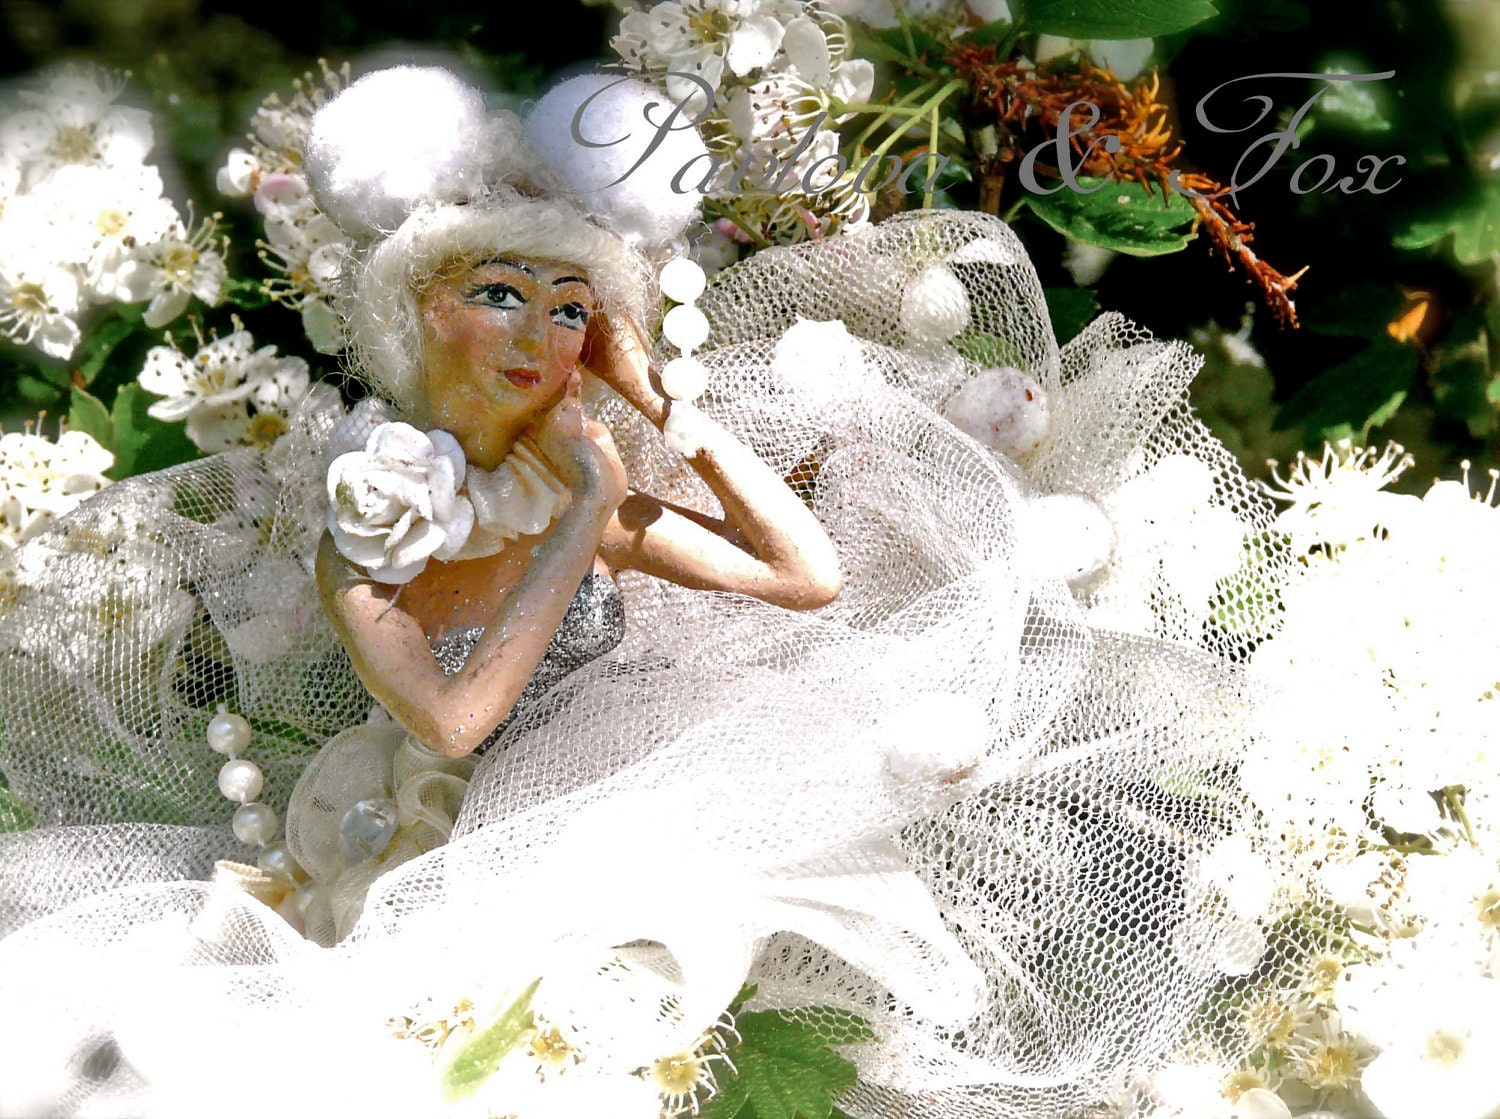 "6"" x 4.5"" photographic print: The May Queen Rests Among Her May Flowers - PavlovaandFox"